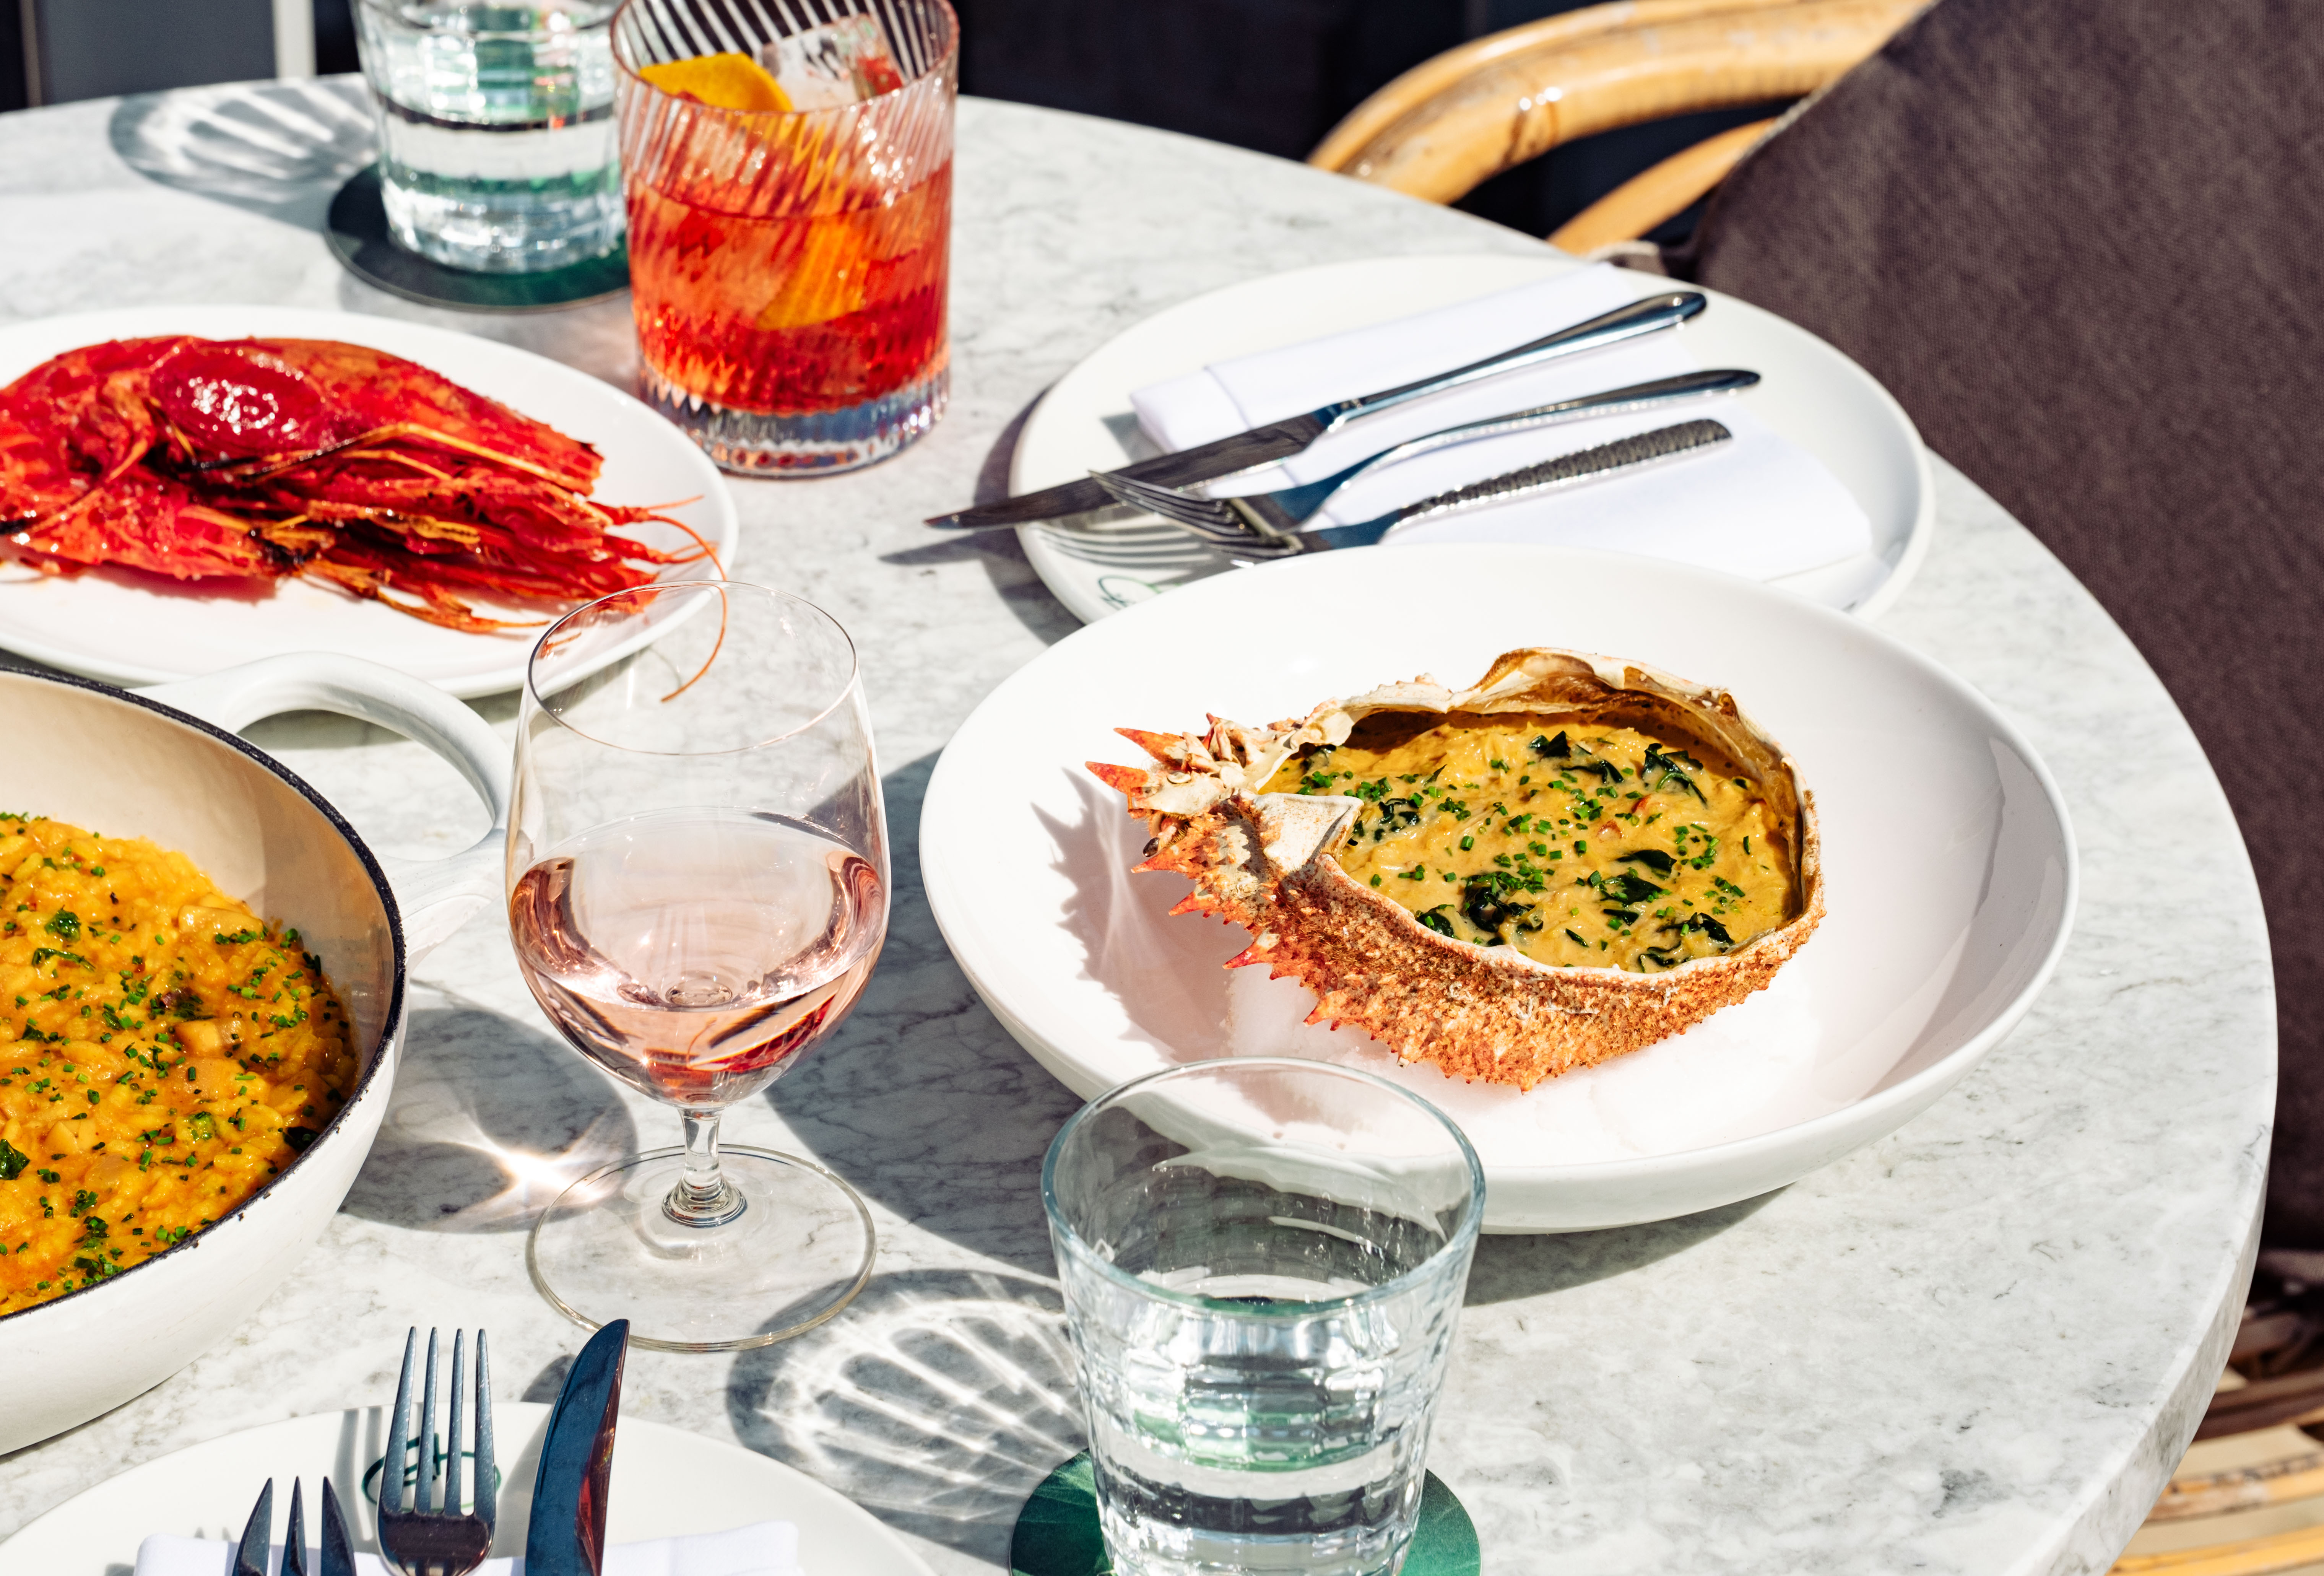 Table at Seabird Restaurant by The Hoxton with seafood dishes and drinks